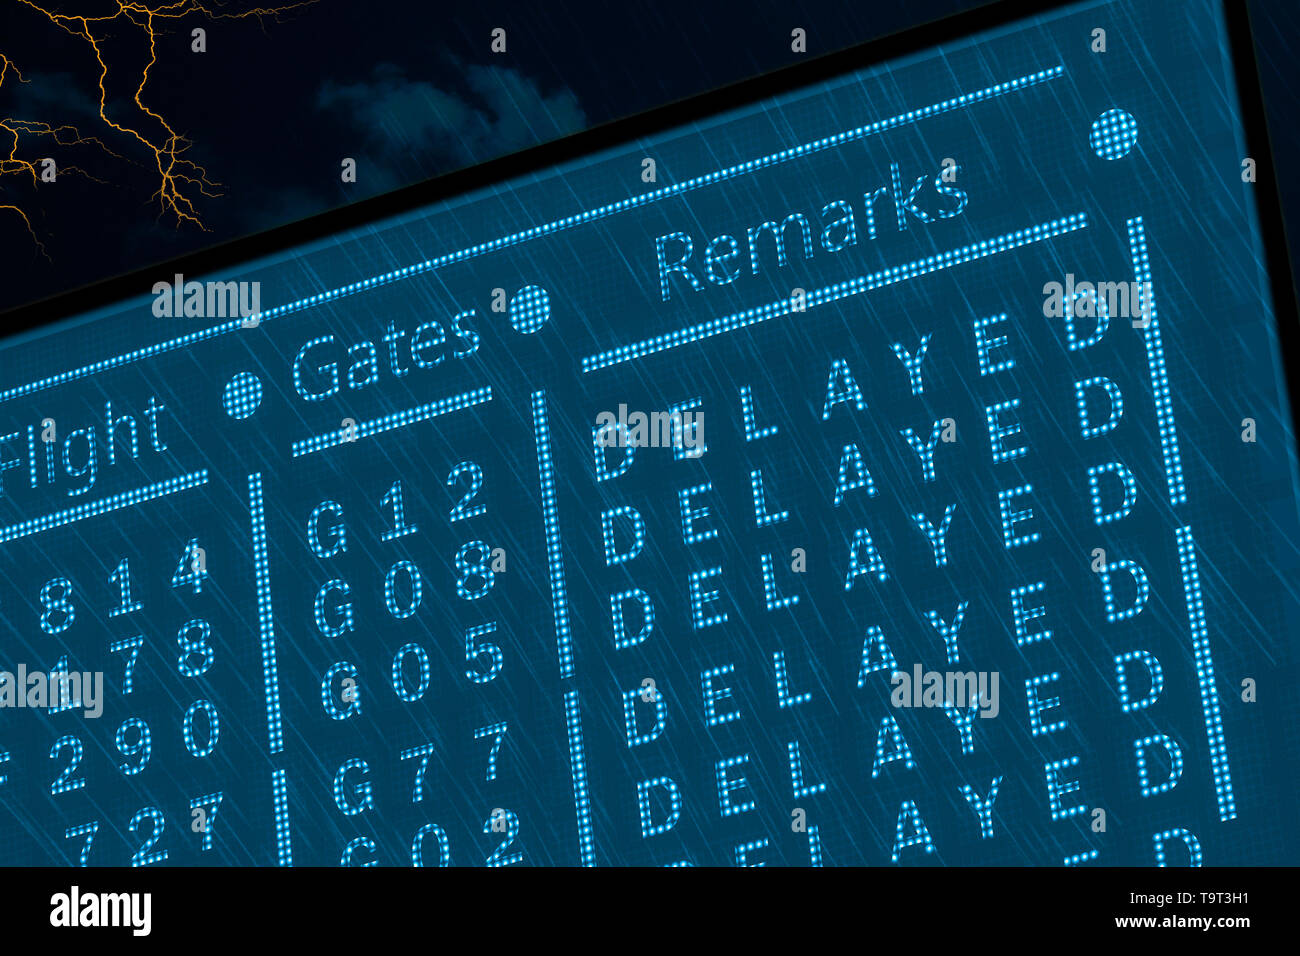 Delayed flights due to bad weather concept. Airport timetable under deep rain with lightnings and dark sky. Dotted pixel monitor display with informat - Stock Image